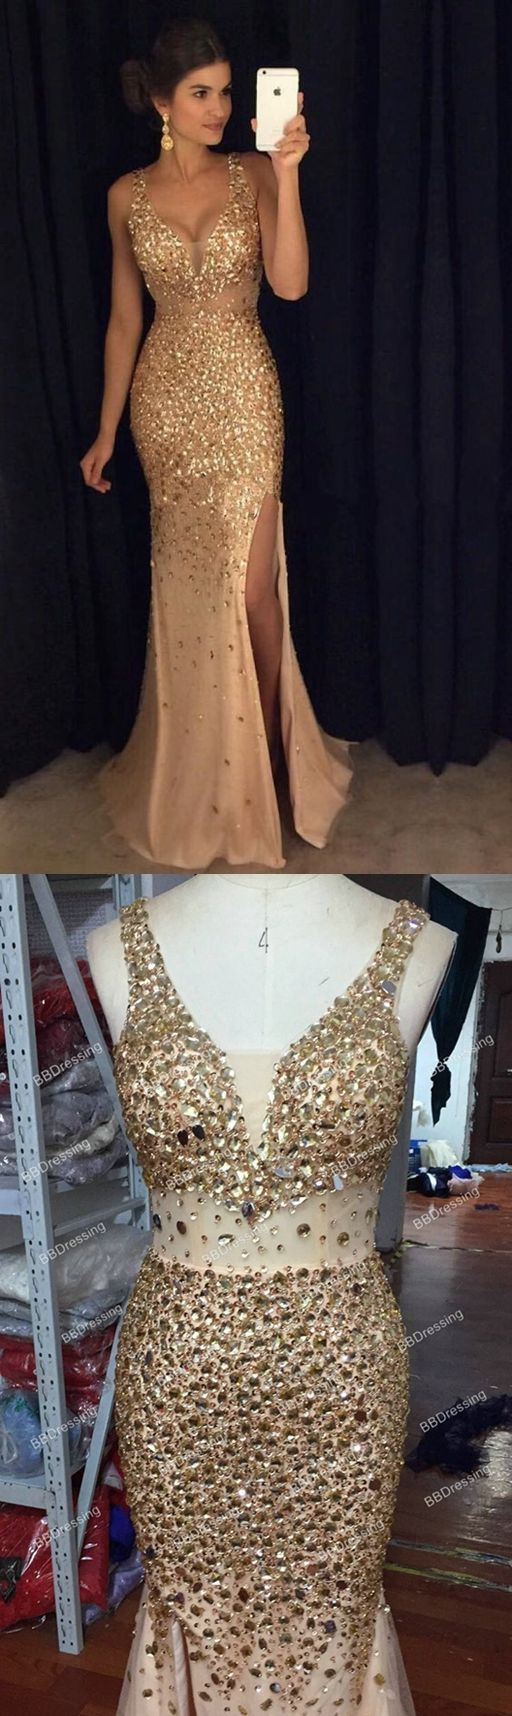 Best 25+ Gold prom dresses ideas on Pinterest | Fancy dress party ...